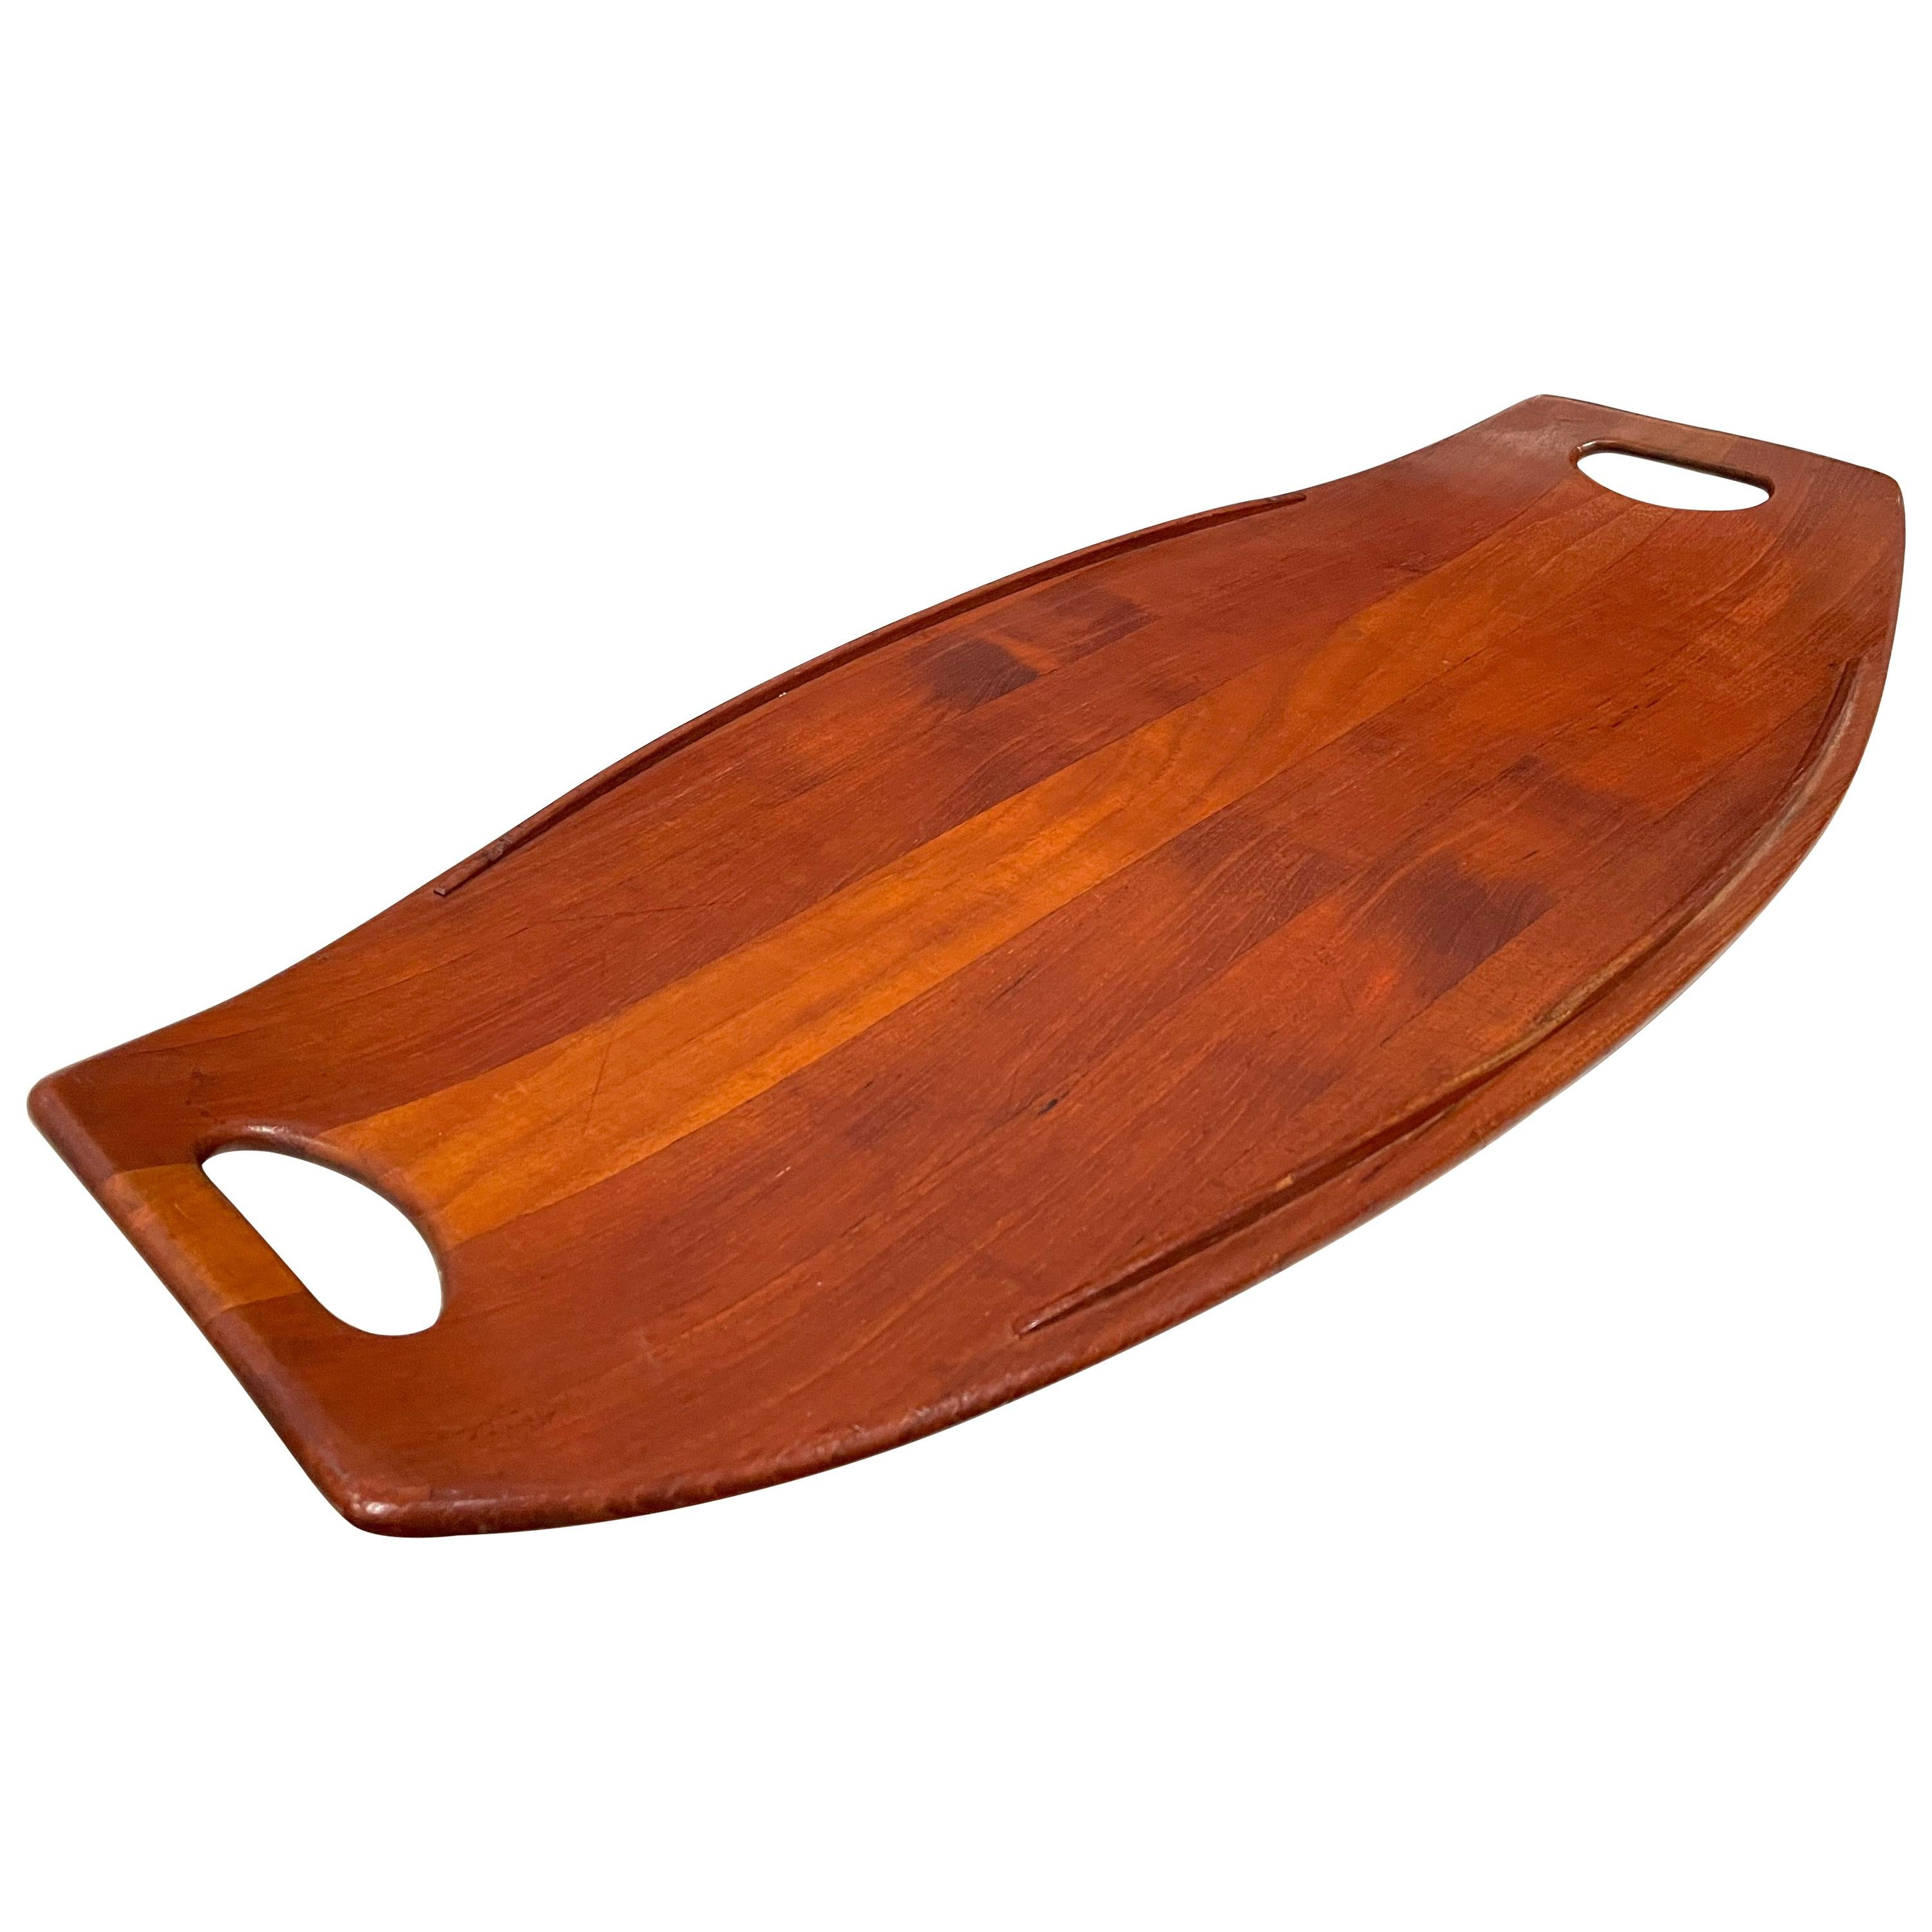 Solid Xlarge Teak Gondola Tray Designed by Quistgaard for Dansk Early Production